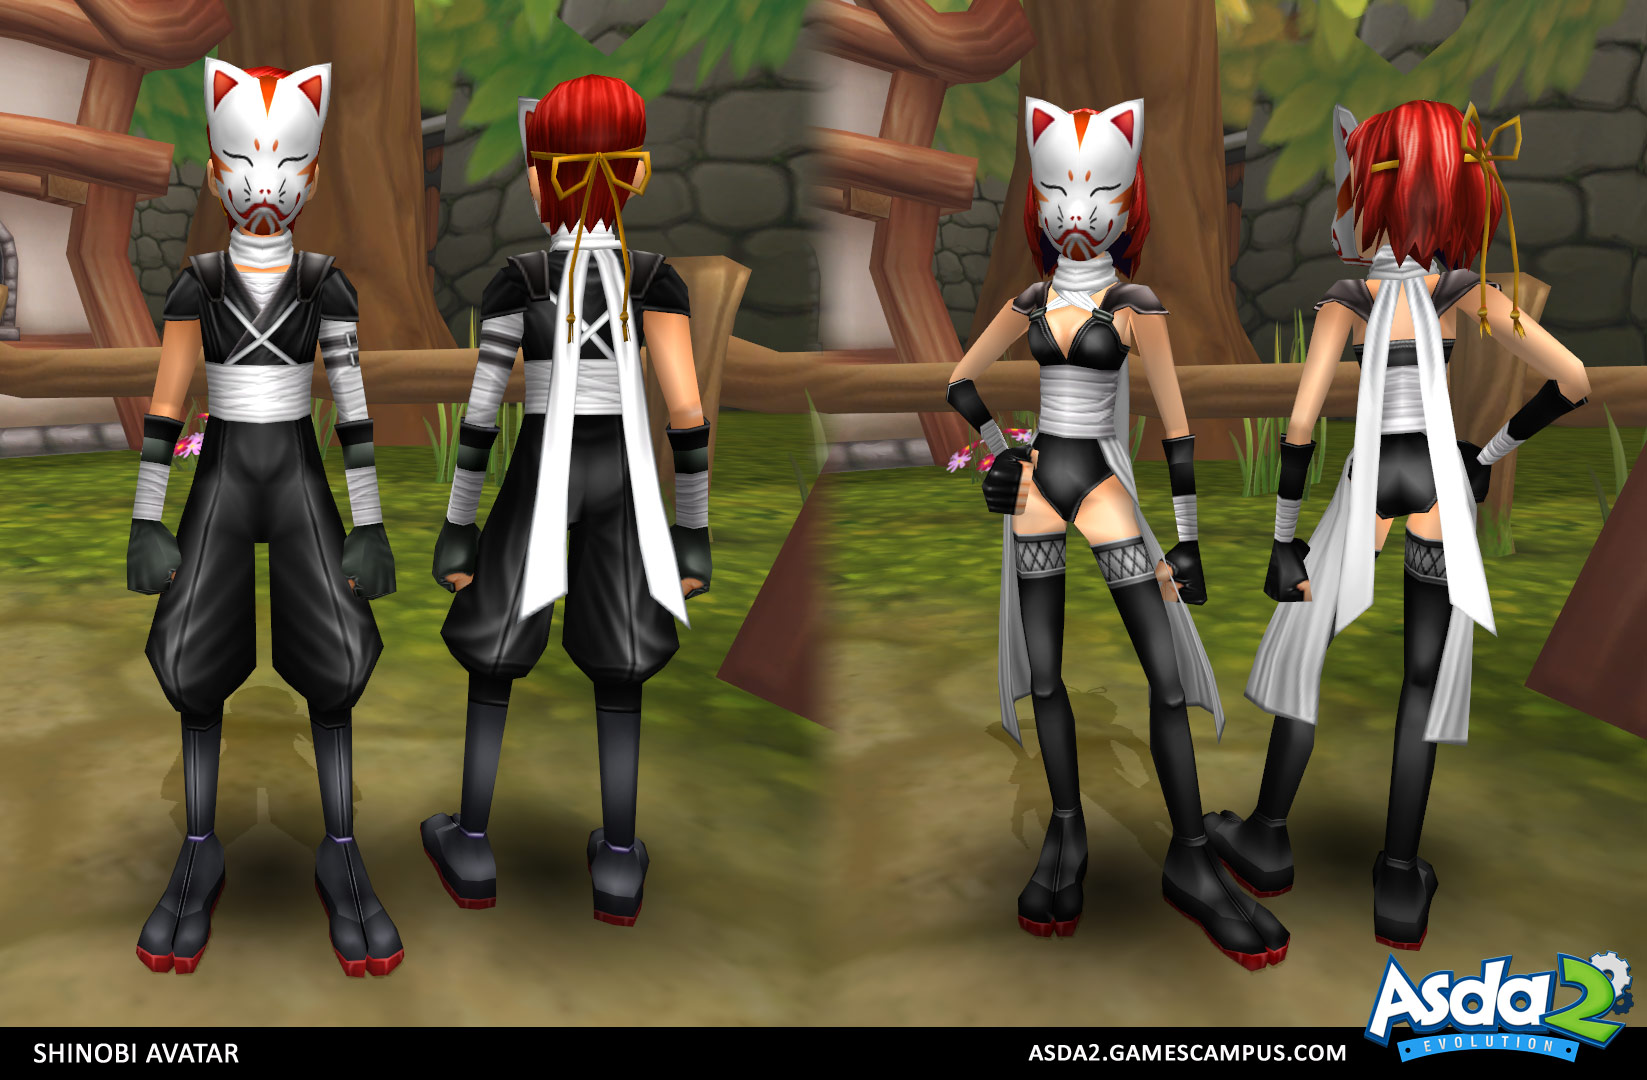 Best Anime MMORPG - Asda 2 - Shinobi Avatar